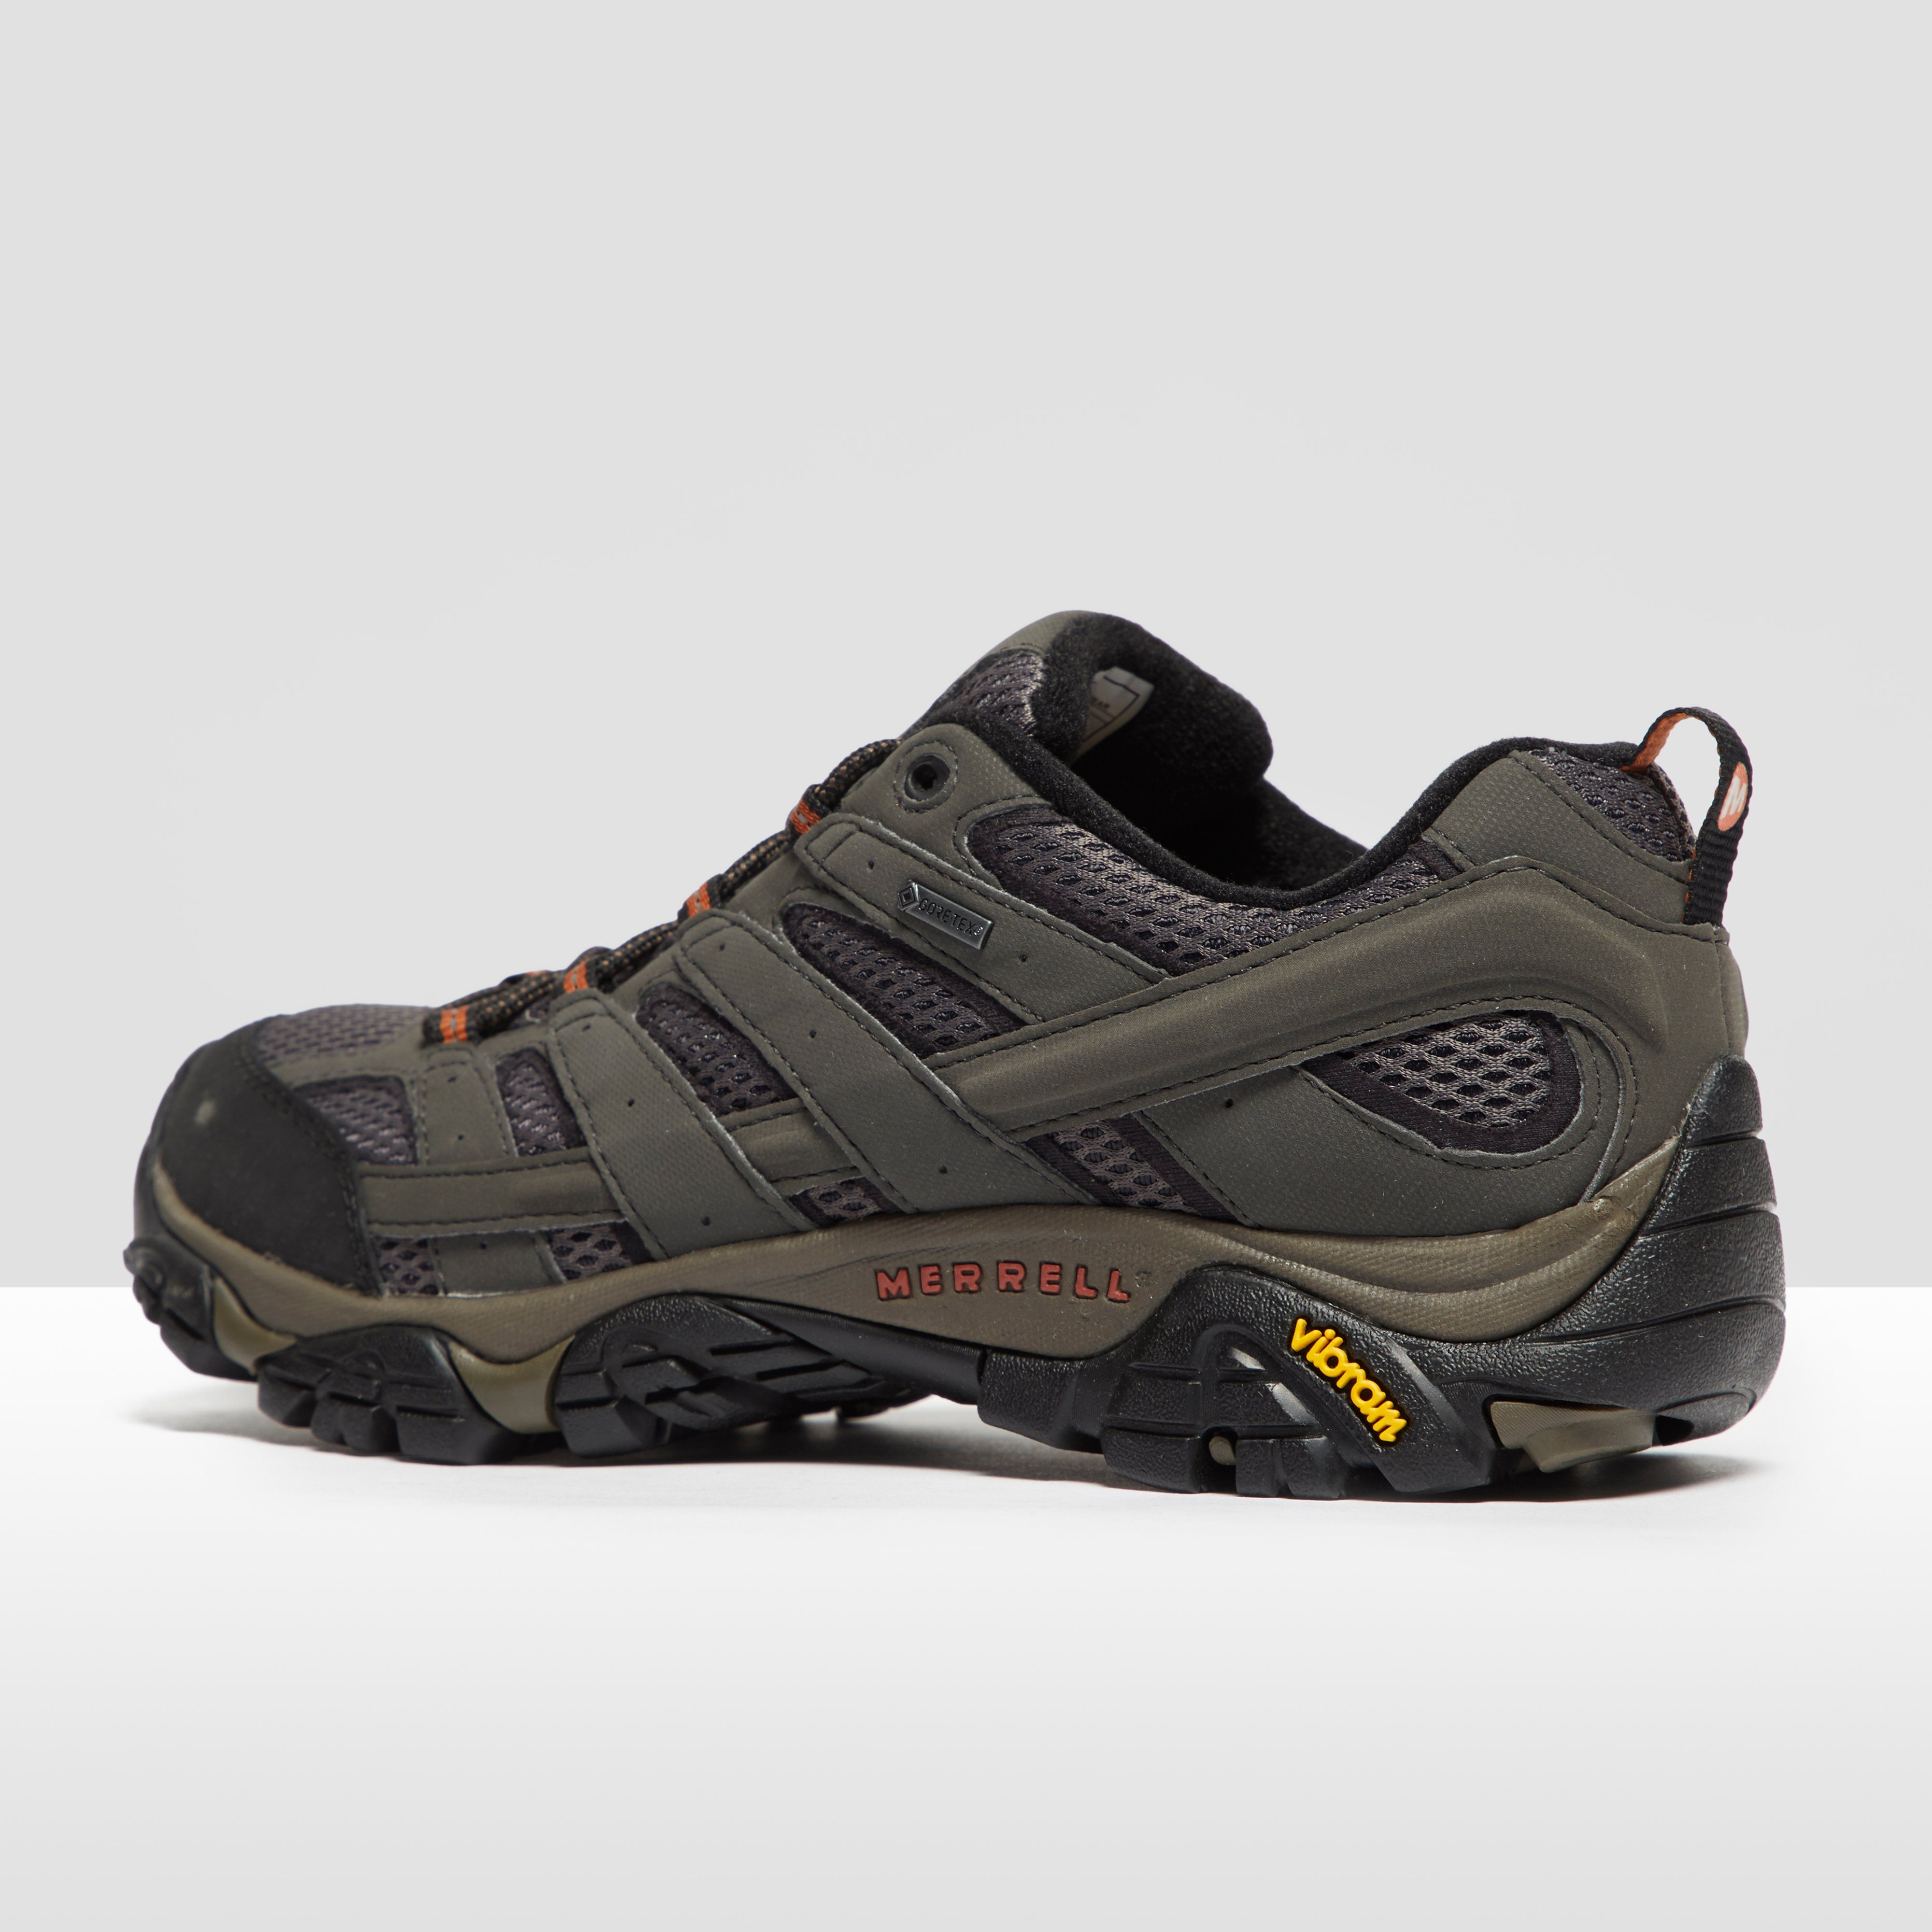 Merrell Mother-Of-All-Boots 2 GORE-TEX Men's Hiking Shoes